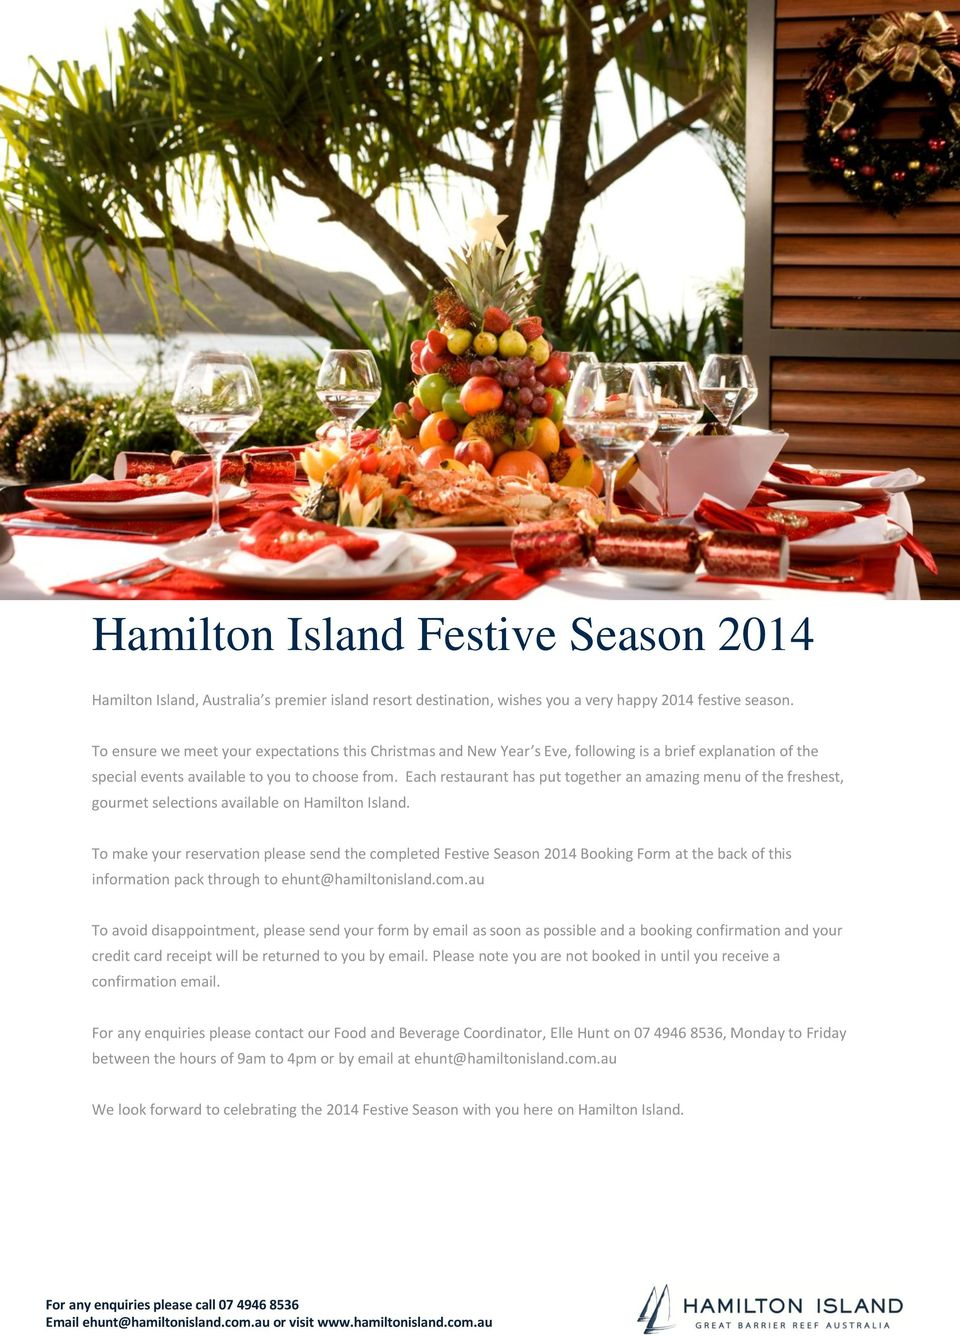 Each restaurant has put together an amazing menu of the freshest, gourmet selections available on Hamilton Island.